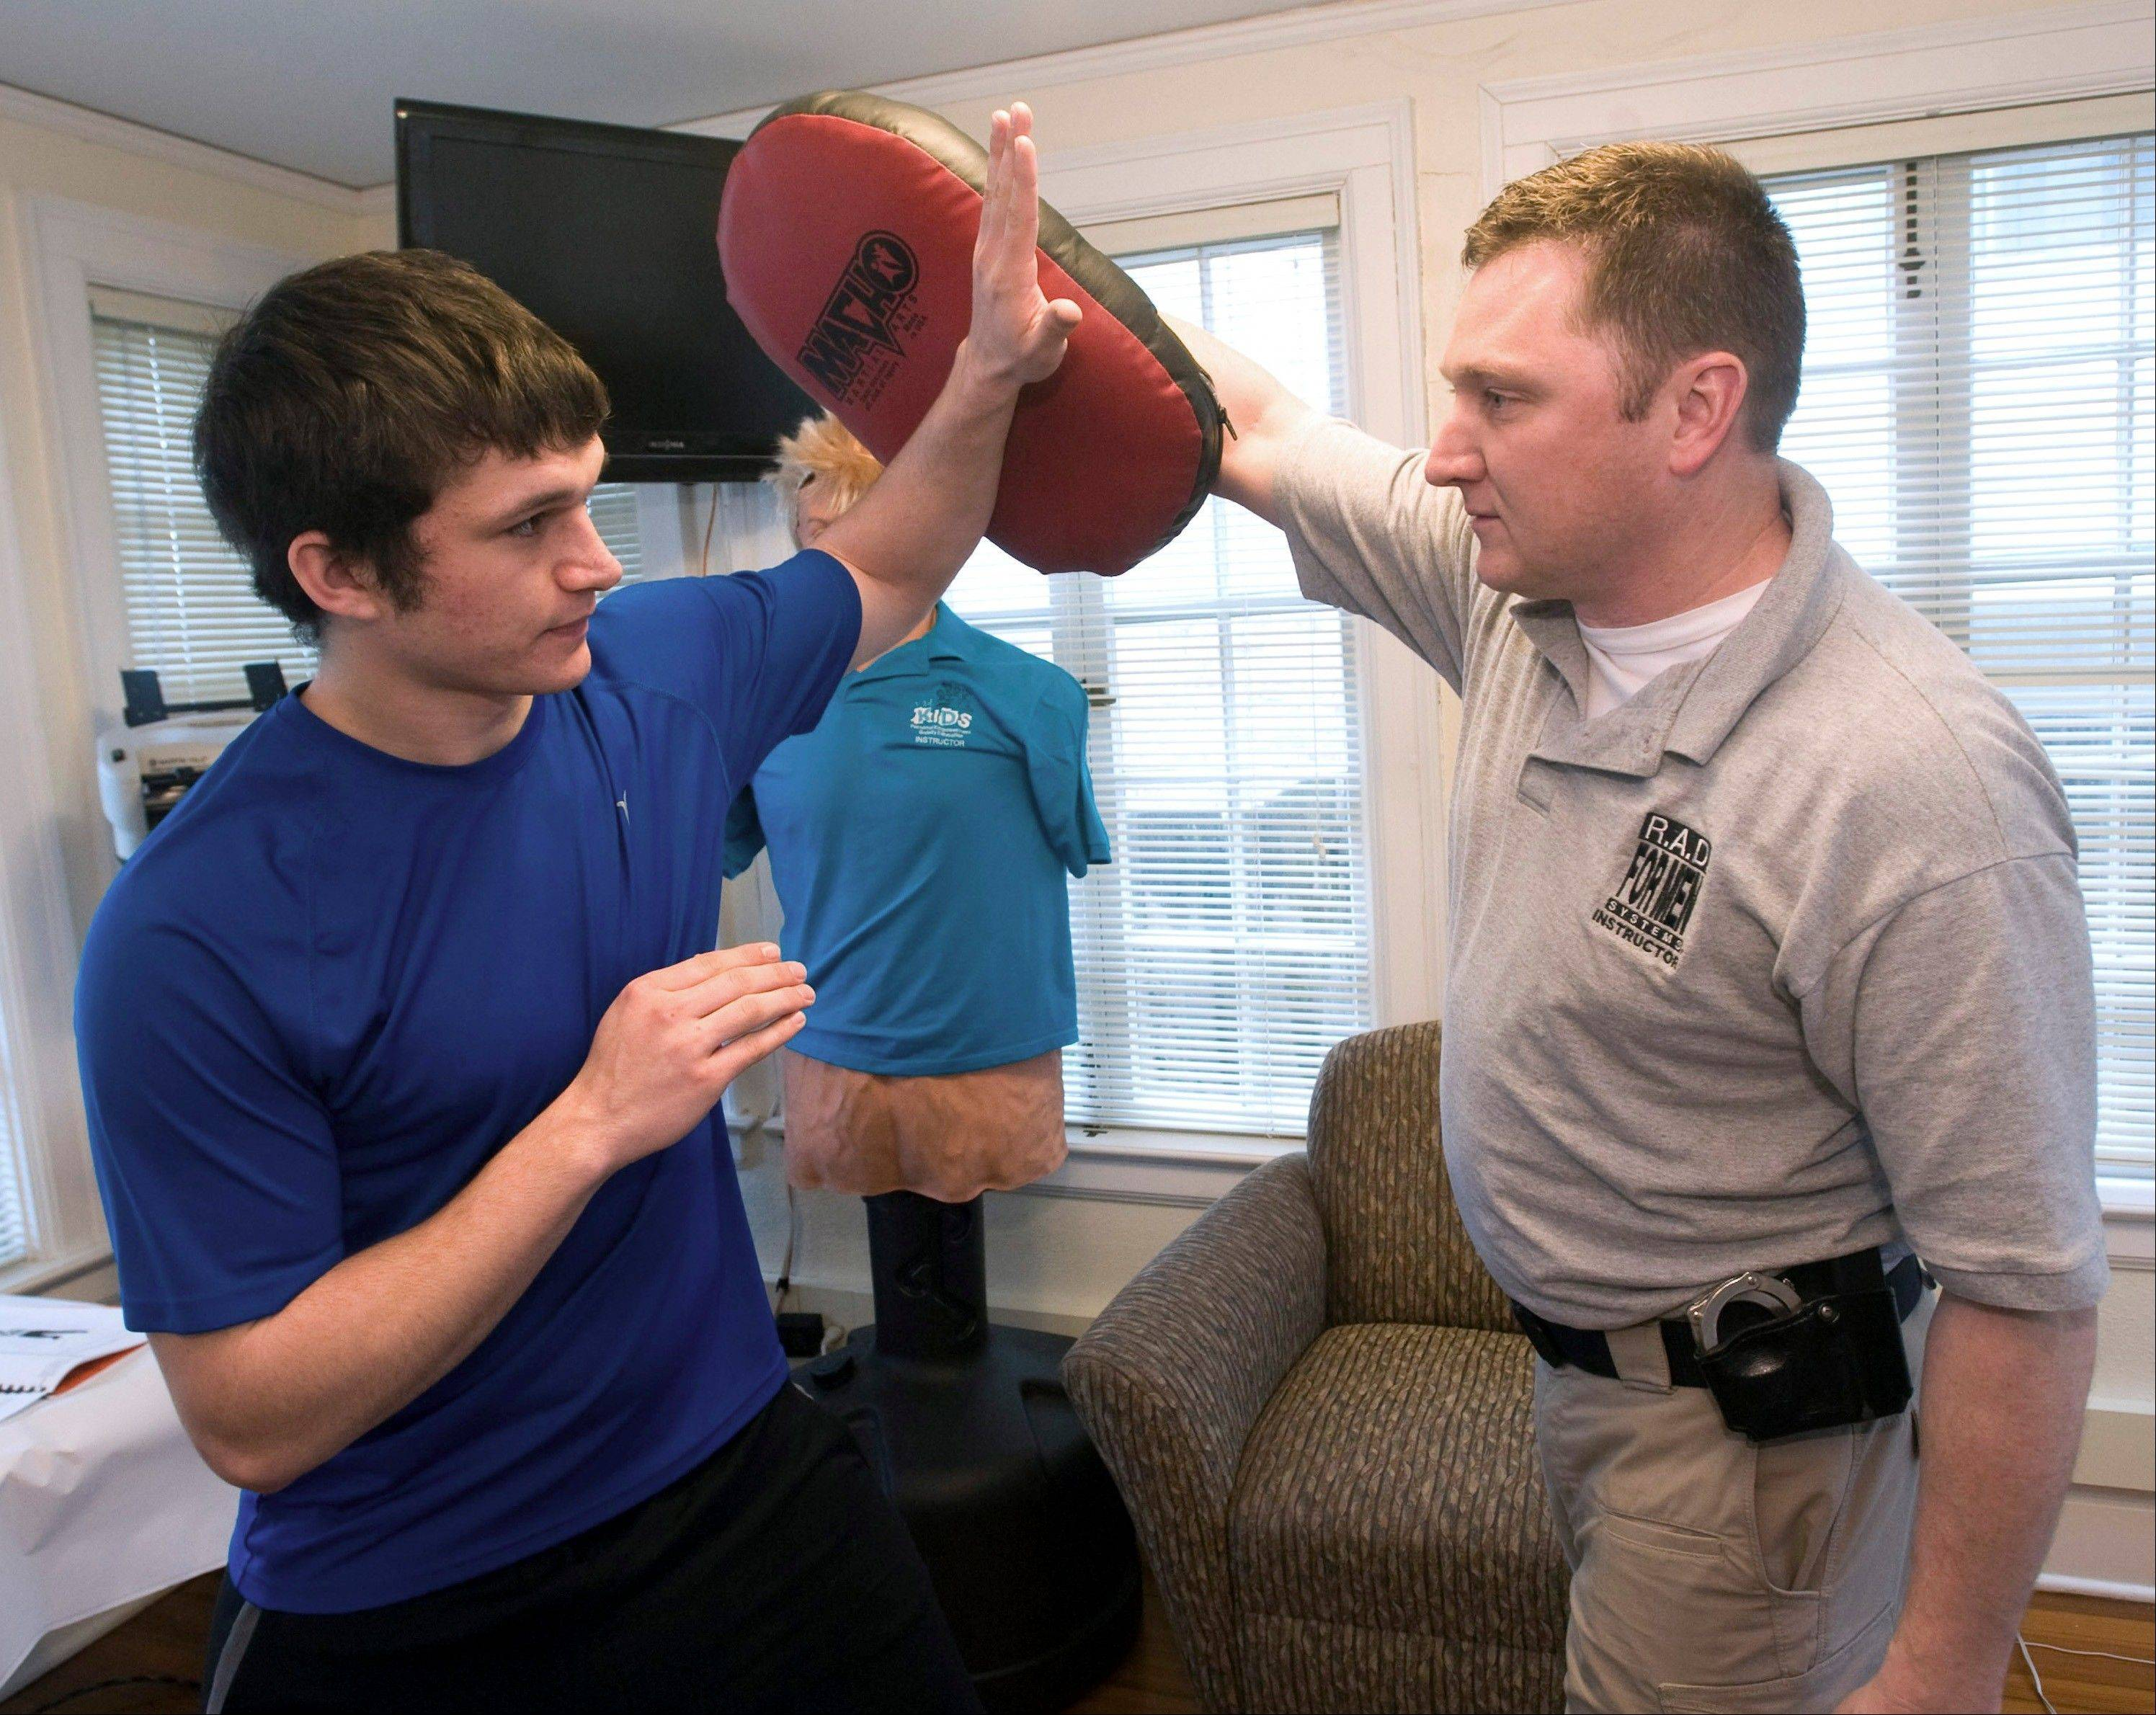 University of Illinois Police Detective Robert Murphy, right, demonstrates a blocking move to Steven Chraca at the Division of Public Safety Annex in Urbana. Chraca is the instructor for the women's class Rape Aggression Defense, also known as RAD. Building upon the popularity of its self-defense classes for women, the department has begun offering similar classes for men.